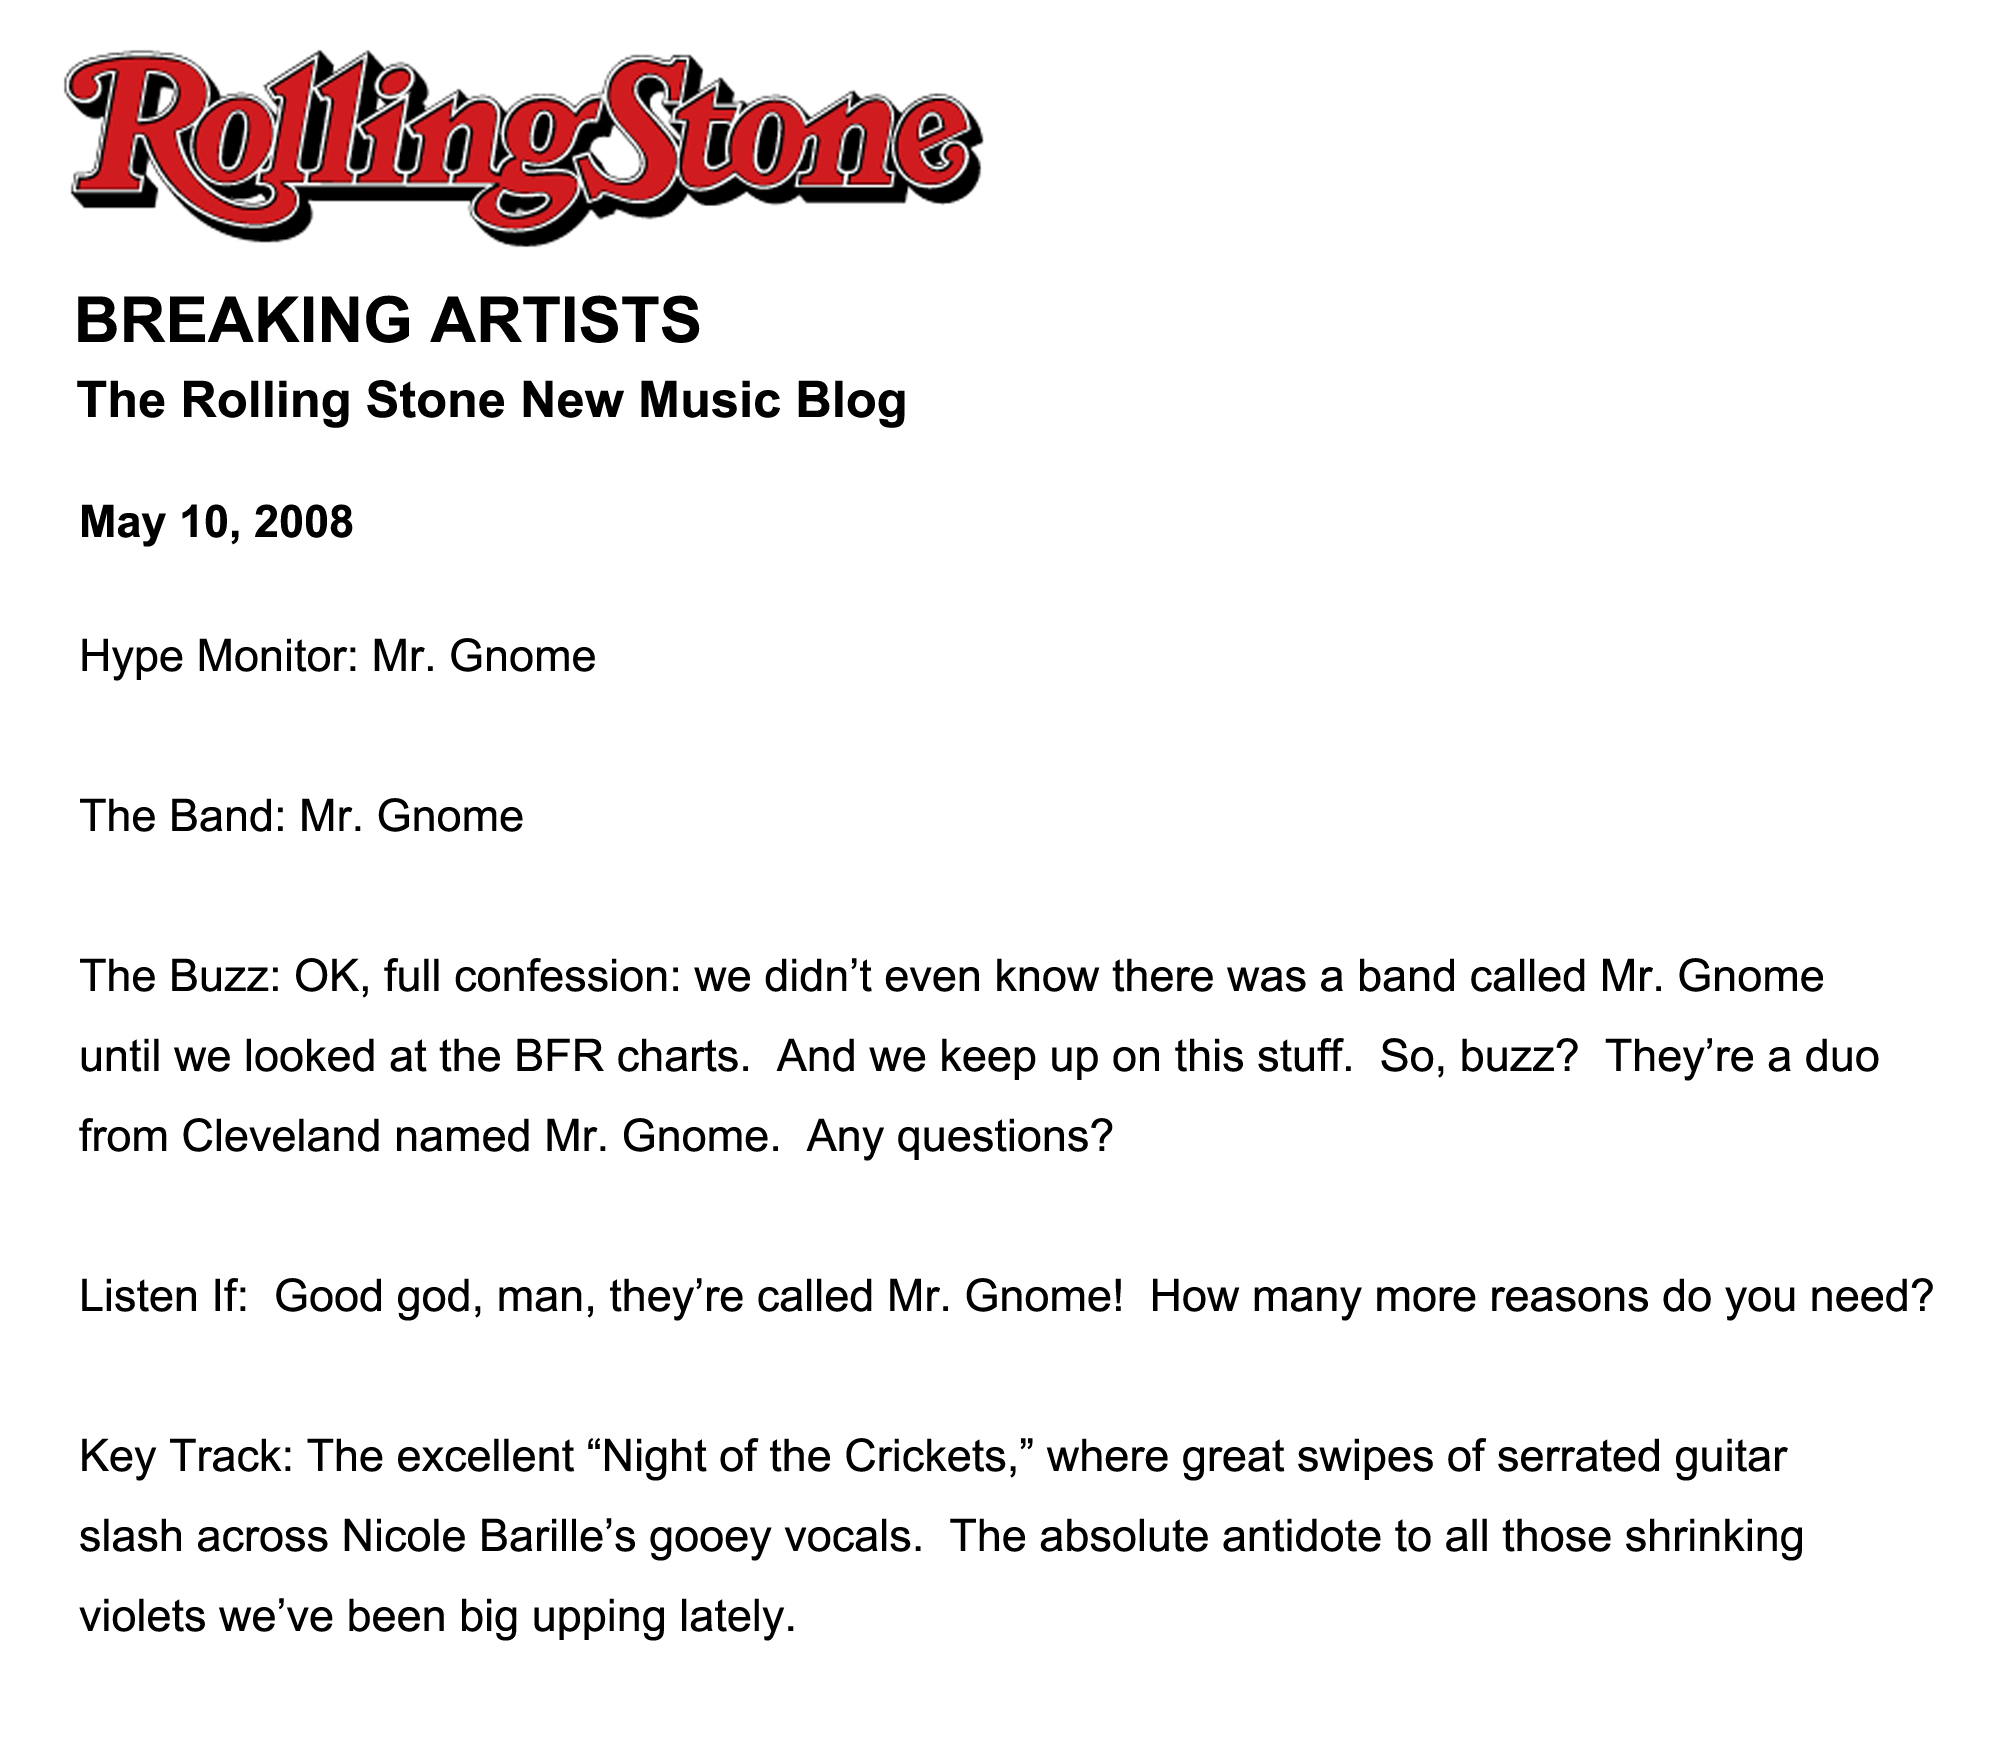 Rolling Stone - Breaking Artists May 2008